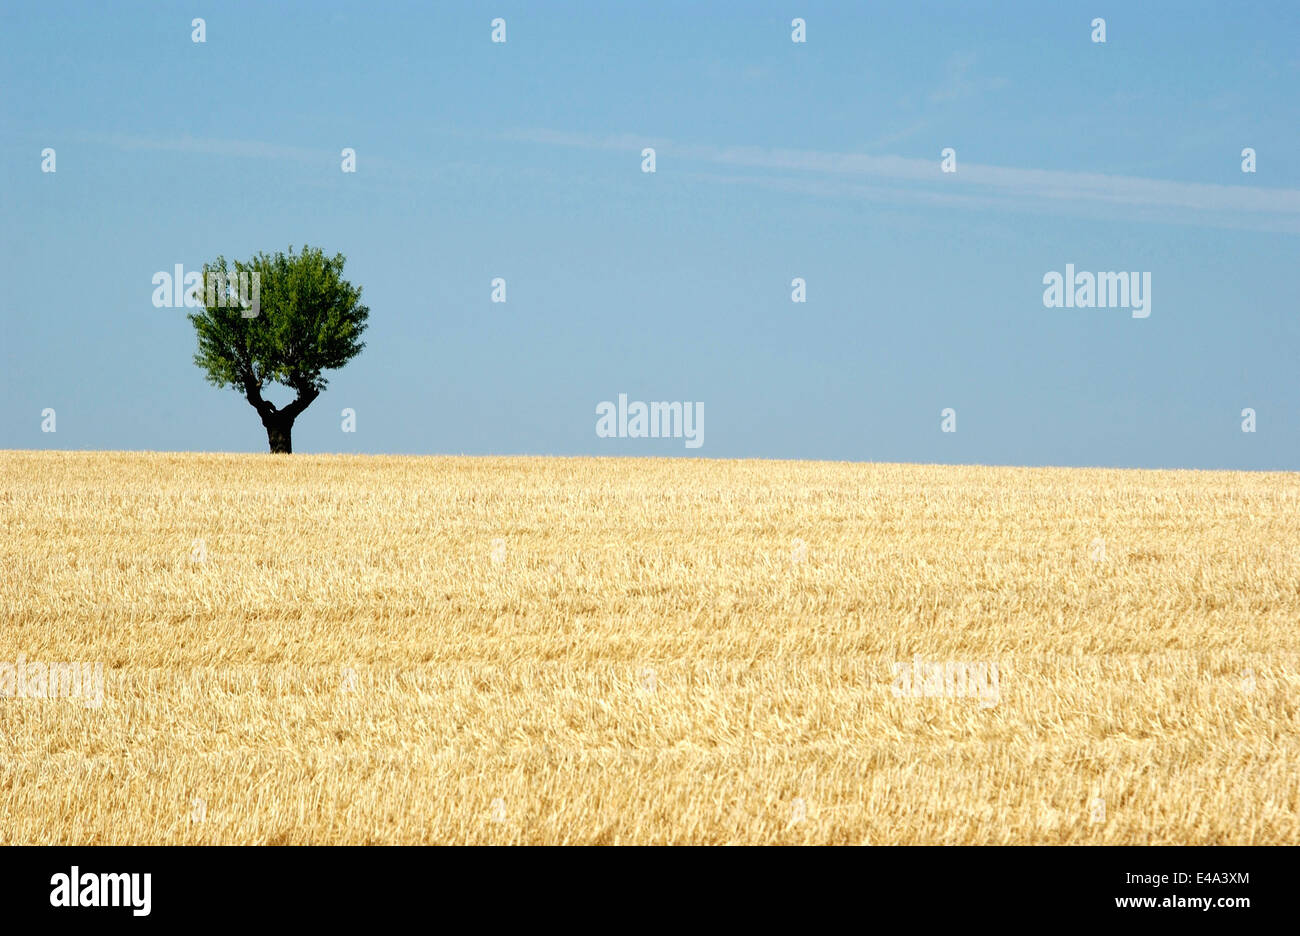 Lone olive tree in a wheat field with blue sky, Provence, France in summer - Stock Image